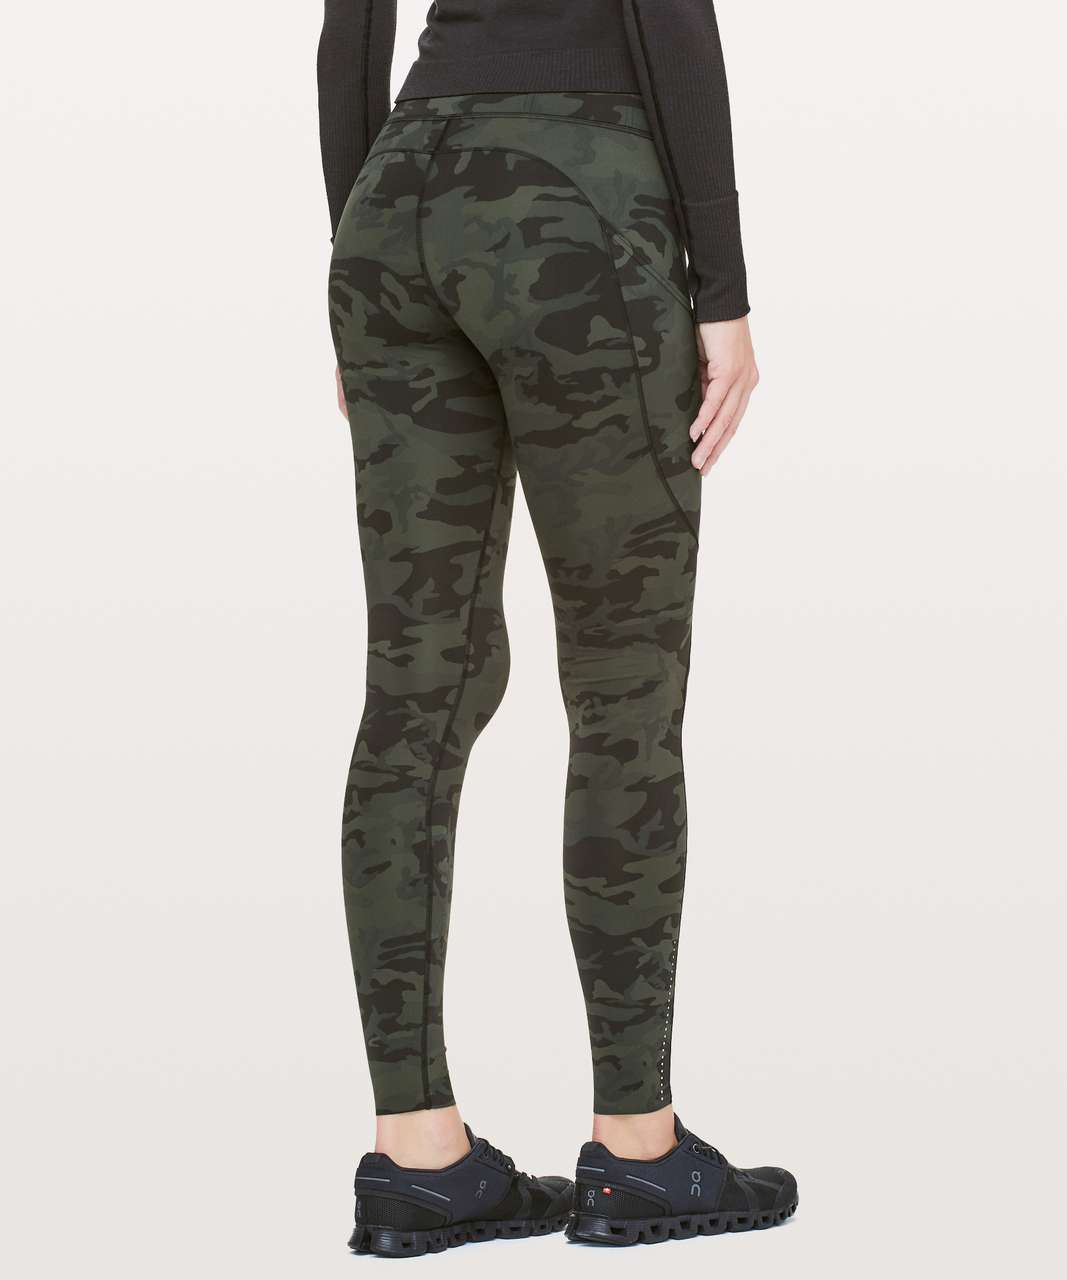 """Lululemon Fast & Free Full Length Tight *Nulux 28"""" - Incognito Camo Multi Gator Green"""